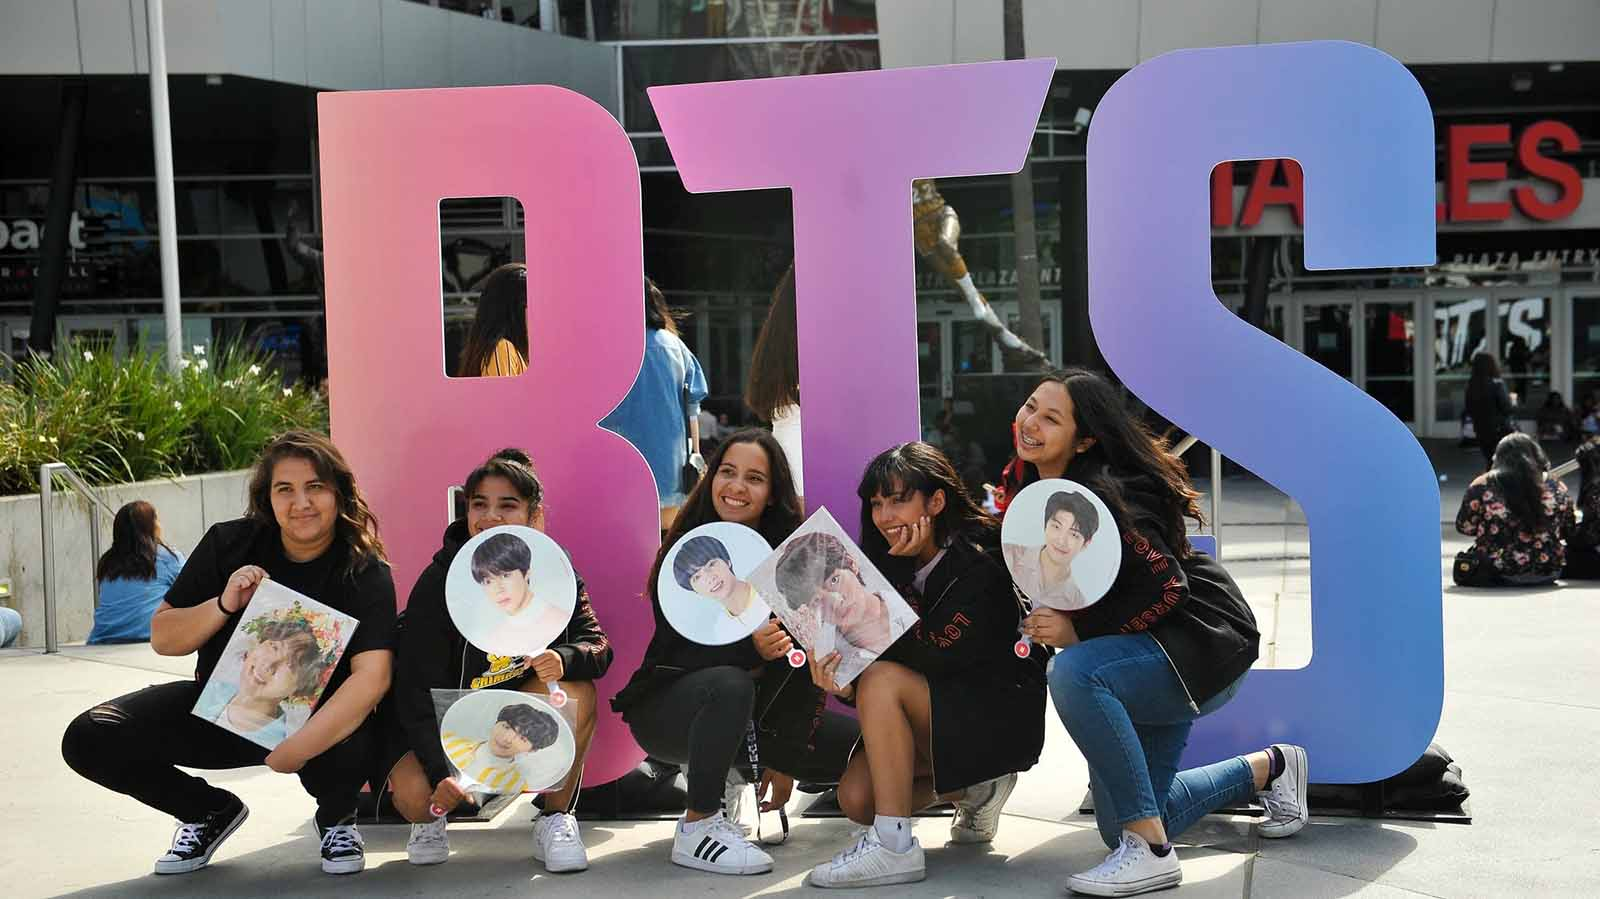 As BTS continues on their path to world domination, their loyal ARMY follows closely behind. Get to know BTS's fanbase better.